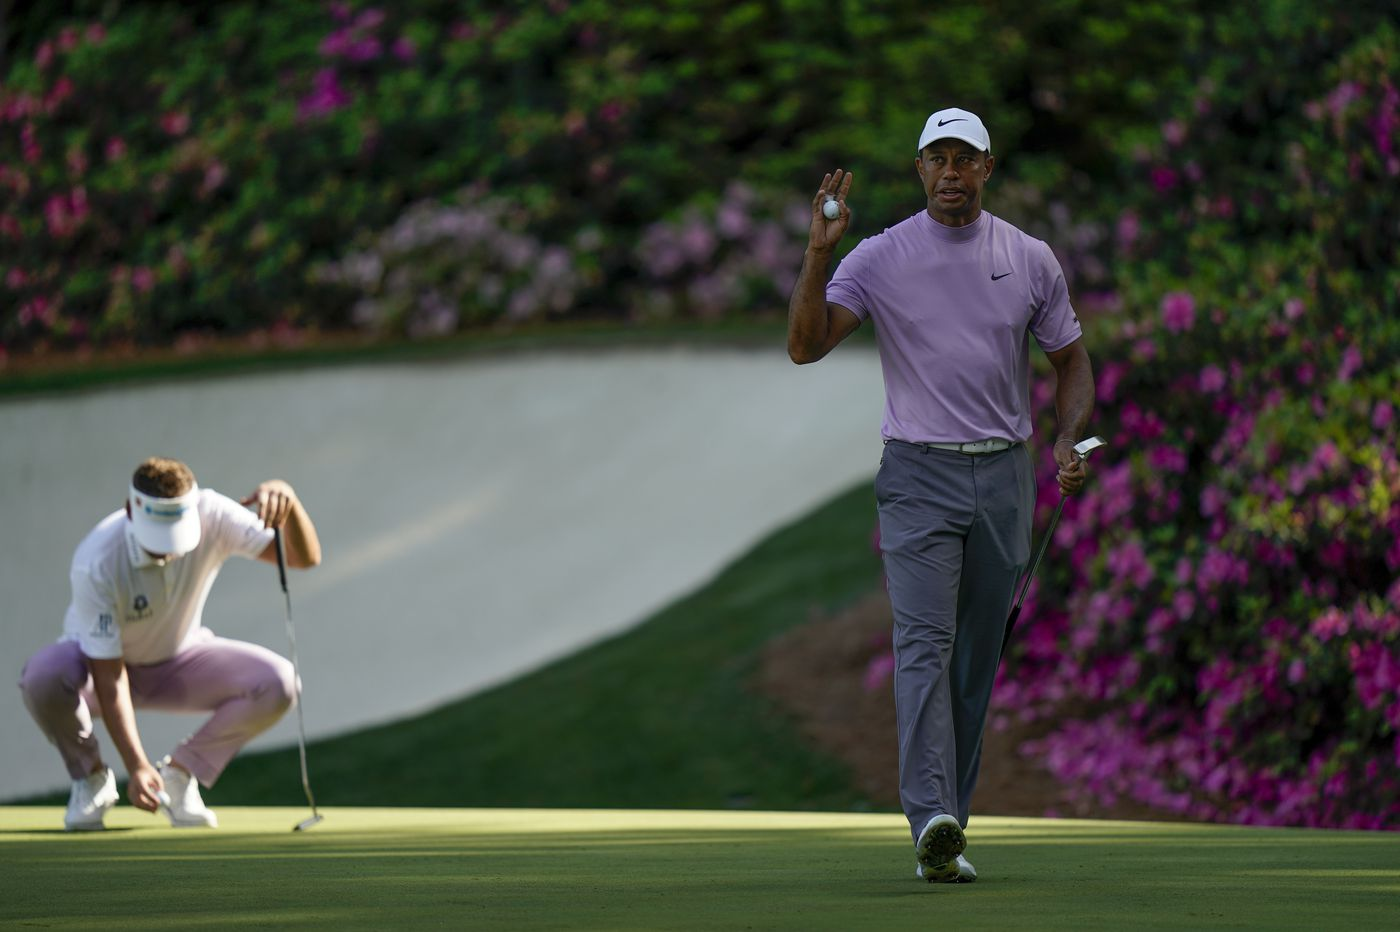 Masters purse 2019: Tiger Woods takes home $2.07 million in prize money